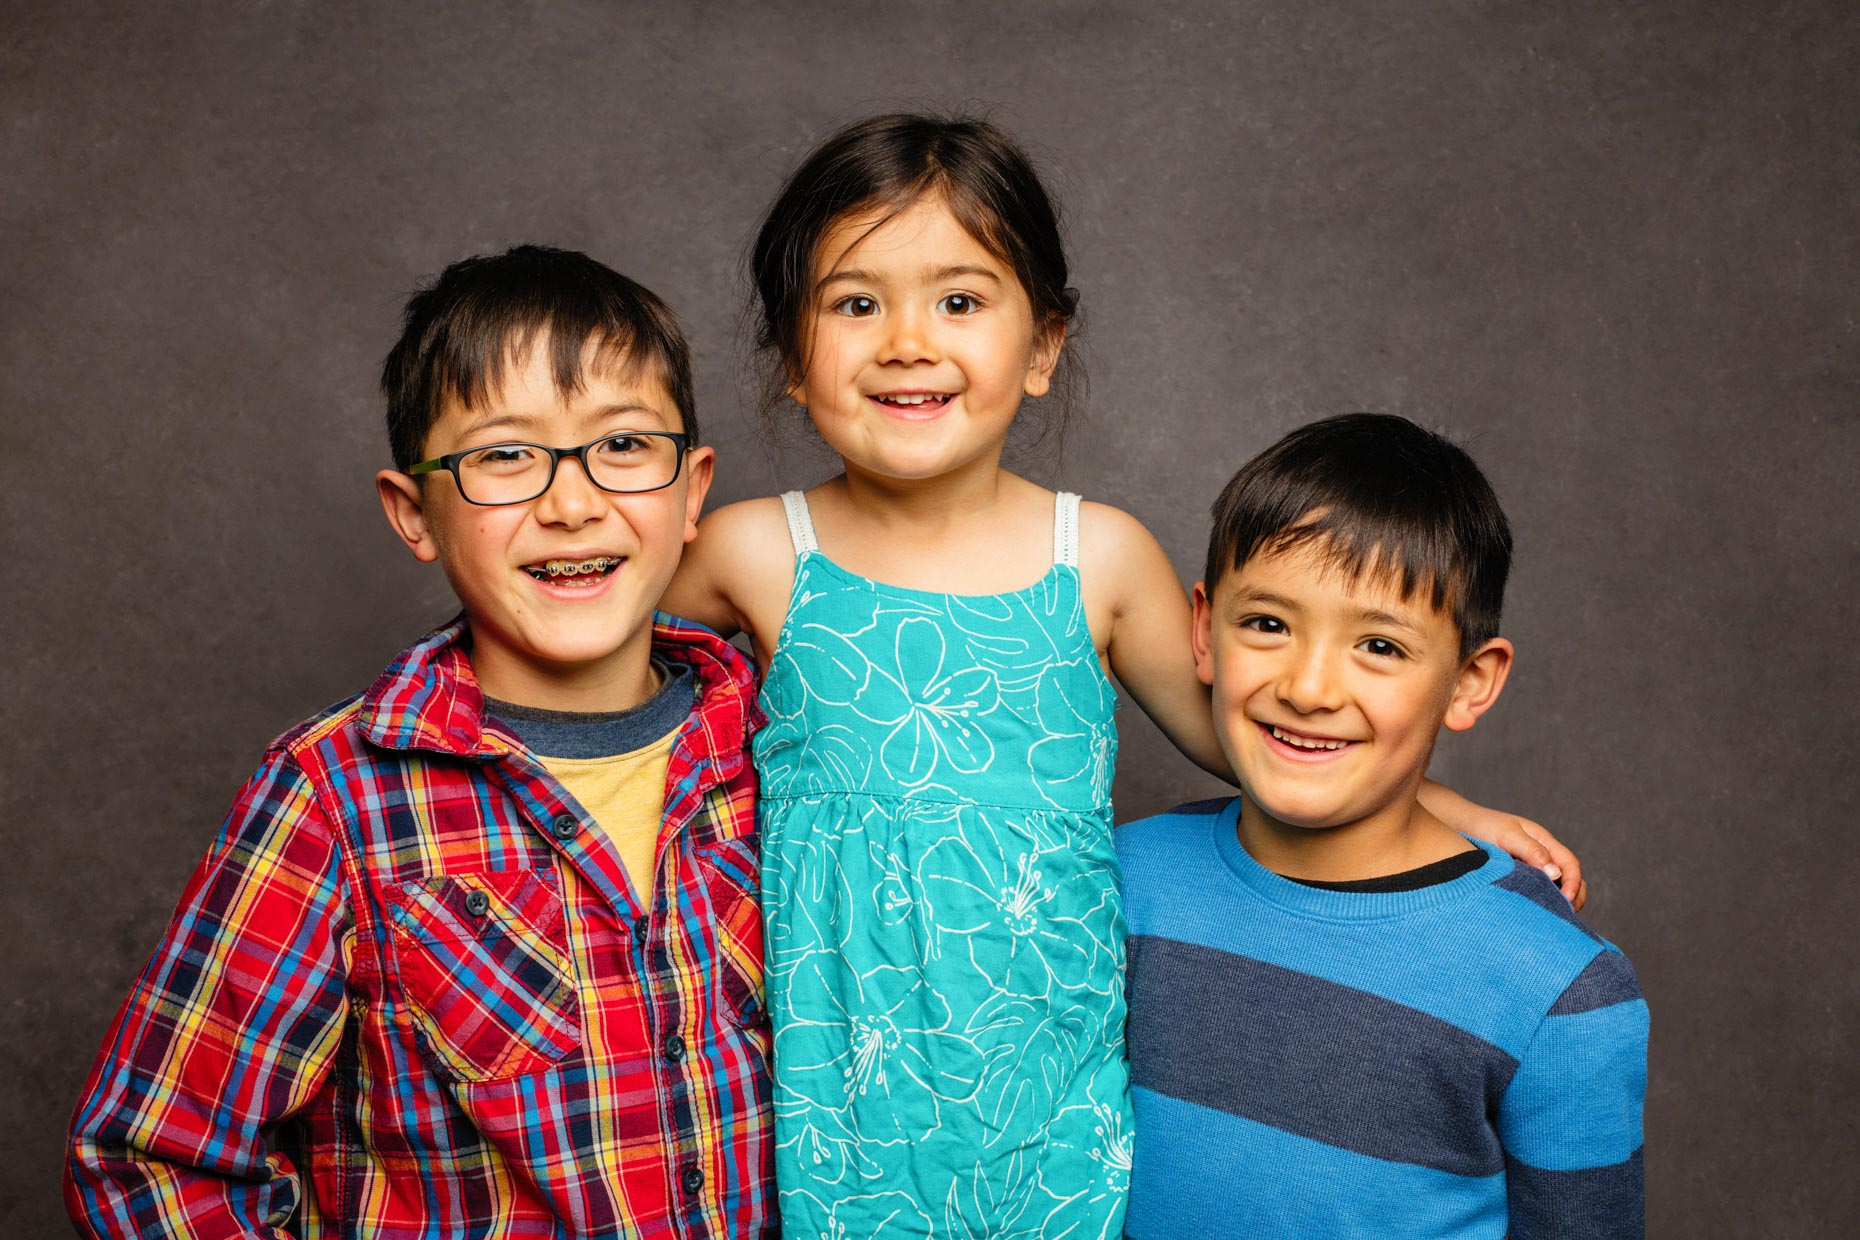 A studio portrait of three adorable (siblings) children. A  9 year old boy, a 3 year old girl and 7 year old boy. This portrait was created by Steve Glass, owner of Glass Photography Portrait Studio. In all of their portraits they are looking to uncover the unique interests, creativity and beauty that each person creates. This deepest portion of a person that is created in the image of God, the Imago Dei. Steve Glass, a professional portrait photographer of Glass Photography services the men, women, children, kids, families, business and people of Fort Collins, Windsor, Loveland, Wellington and the surrounding areas of Northern Colorado and southern Wyoming (and sometime Denver), through professional photography by creating timeless portraits and heirloom prints, ranging from corporate portraits, corporate headshots, environmental portraits, editorial portraits, and beauty portraits.